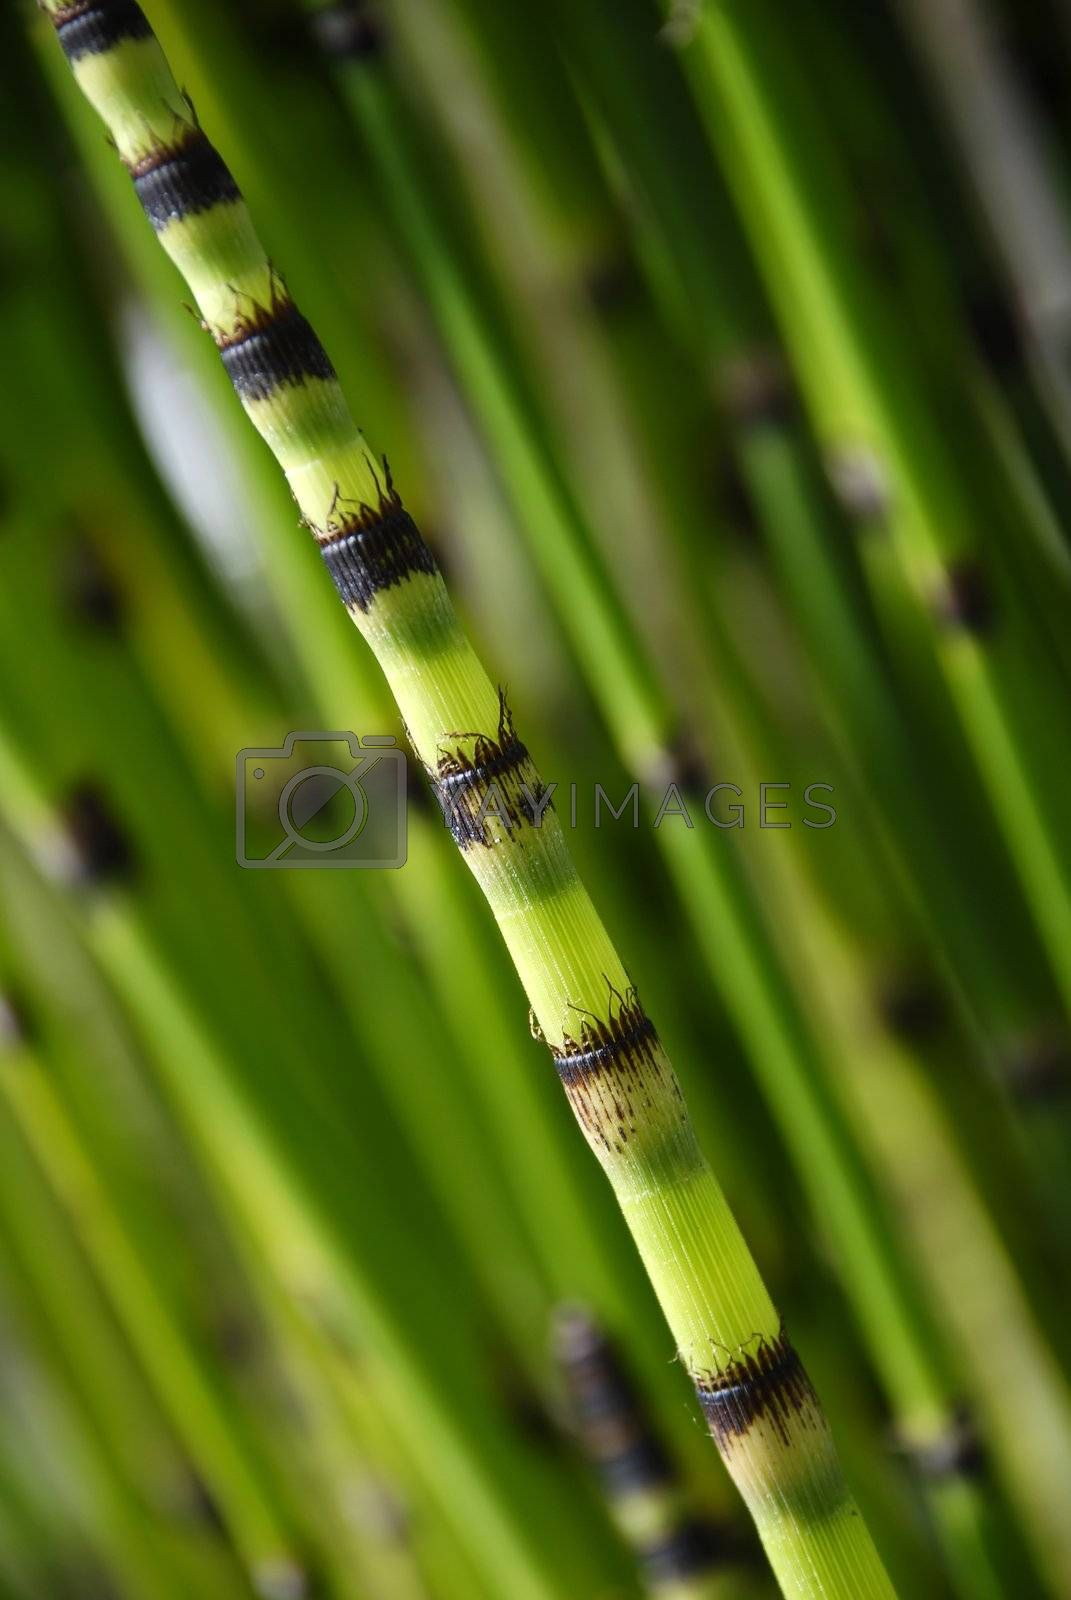 single shoot of bamboo set against out of foucs bamboo background